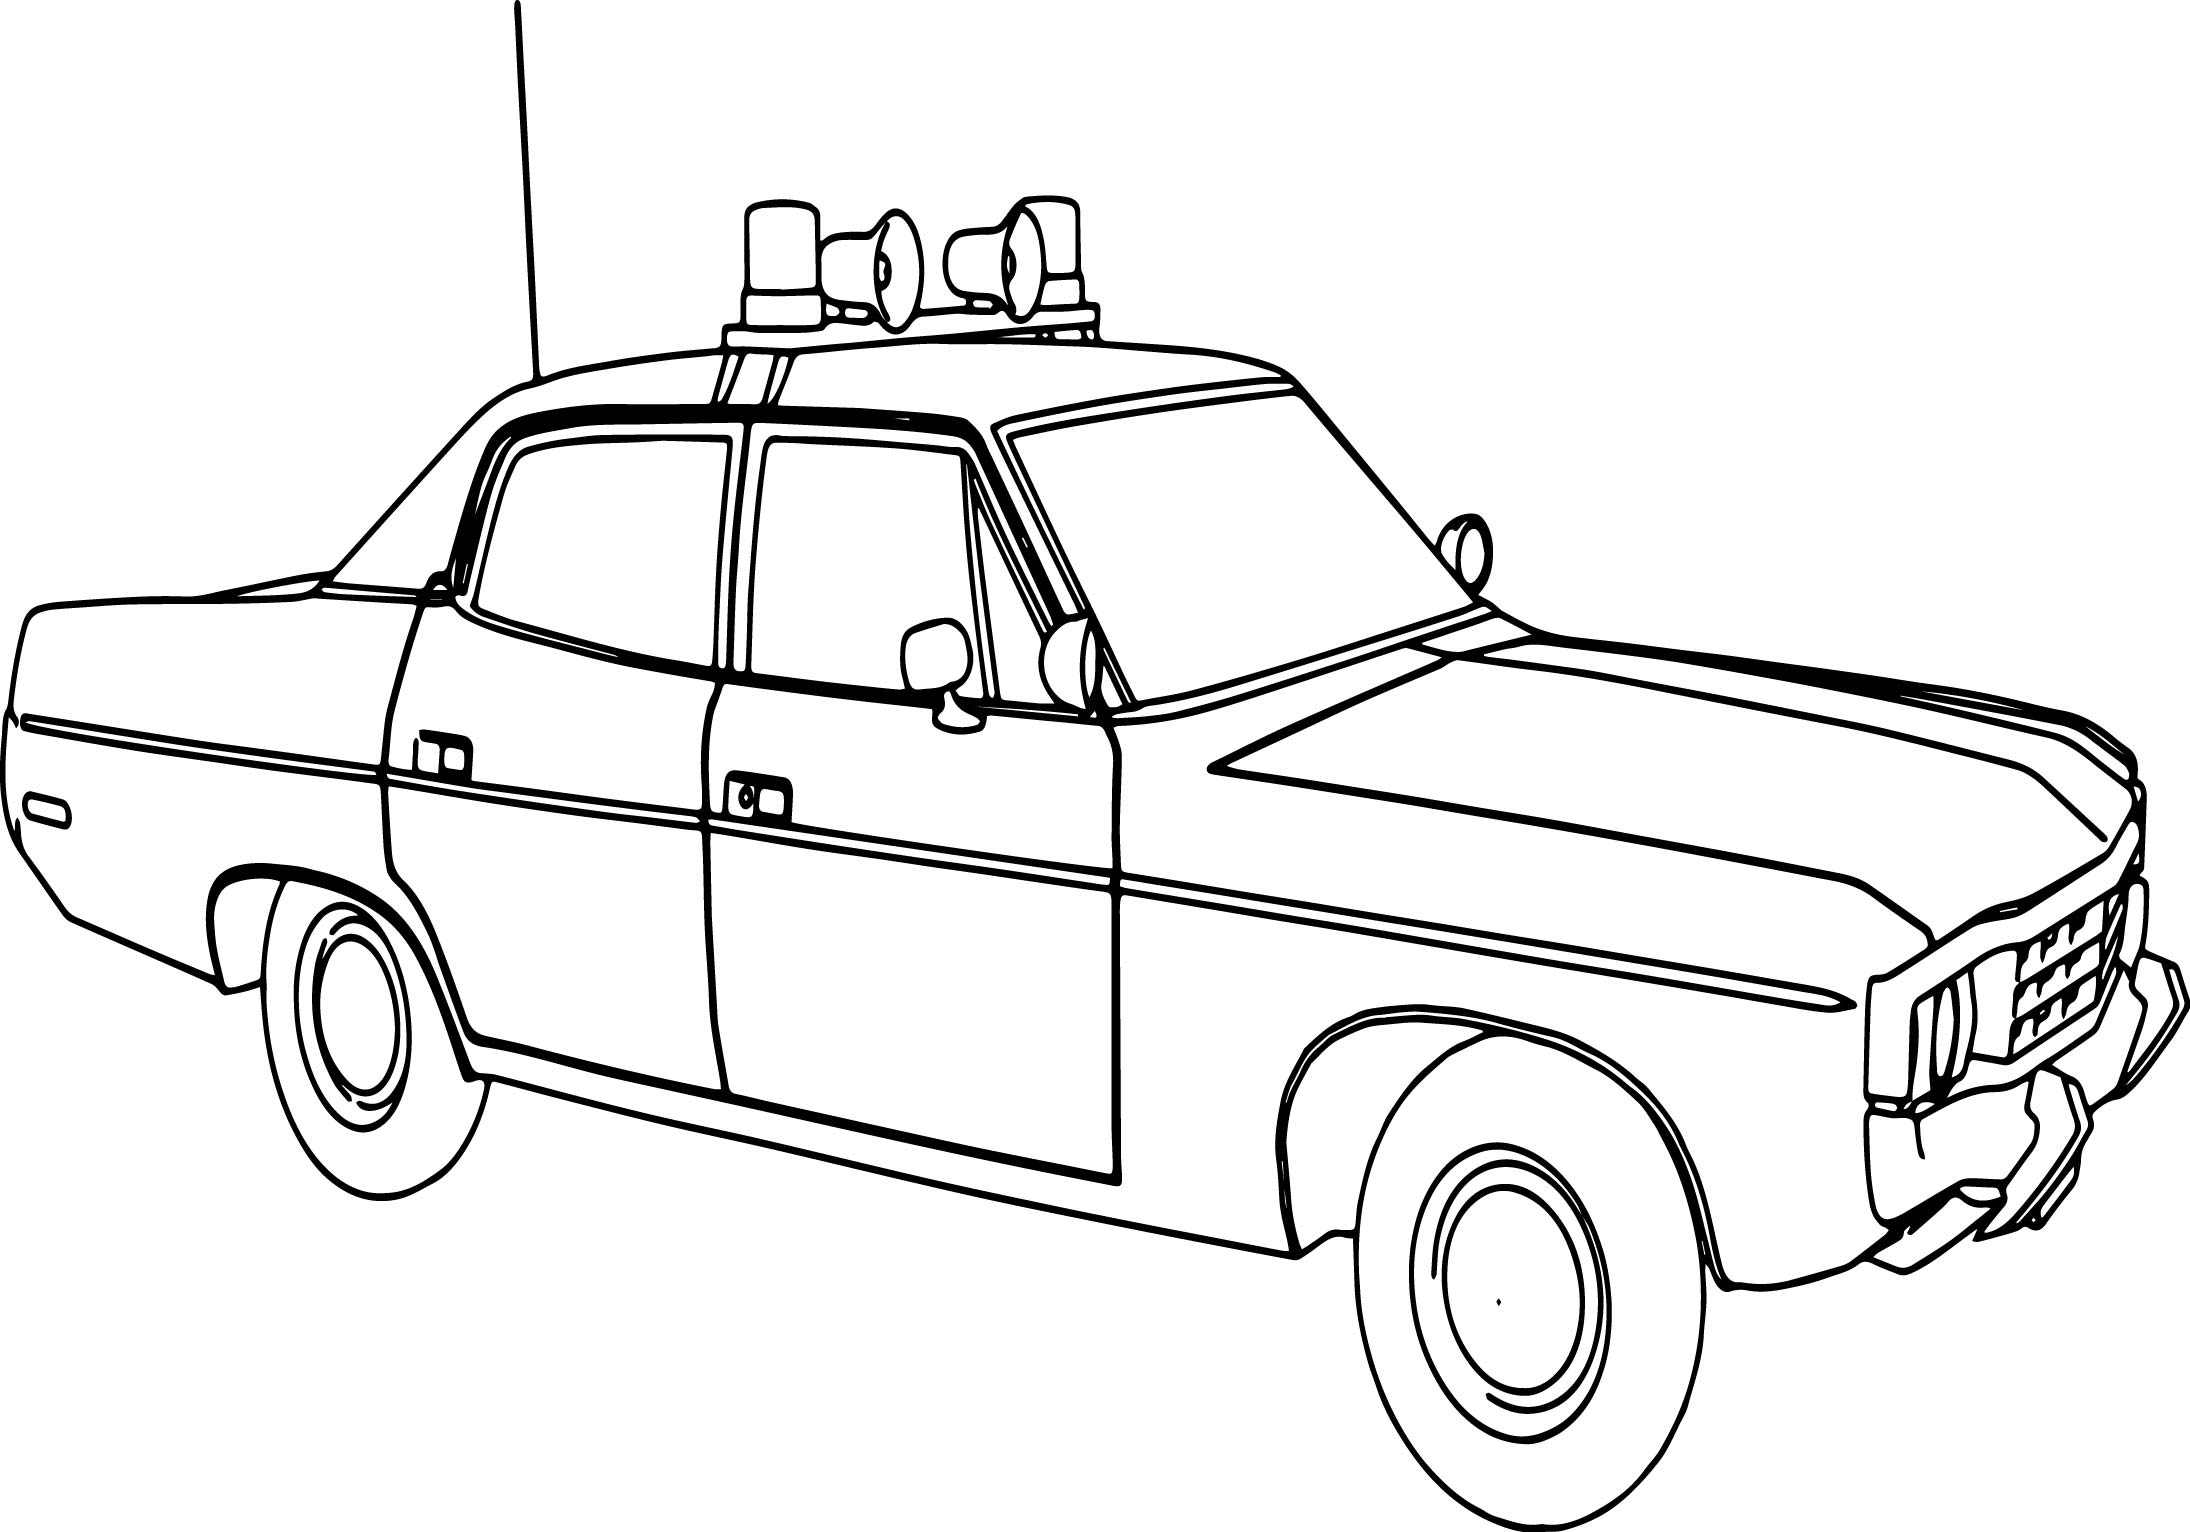 2190x1532 Police Car Transportation Coloring Pages For Kids Printable